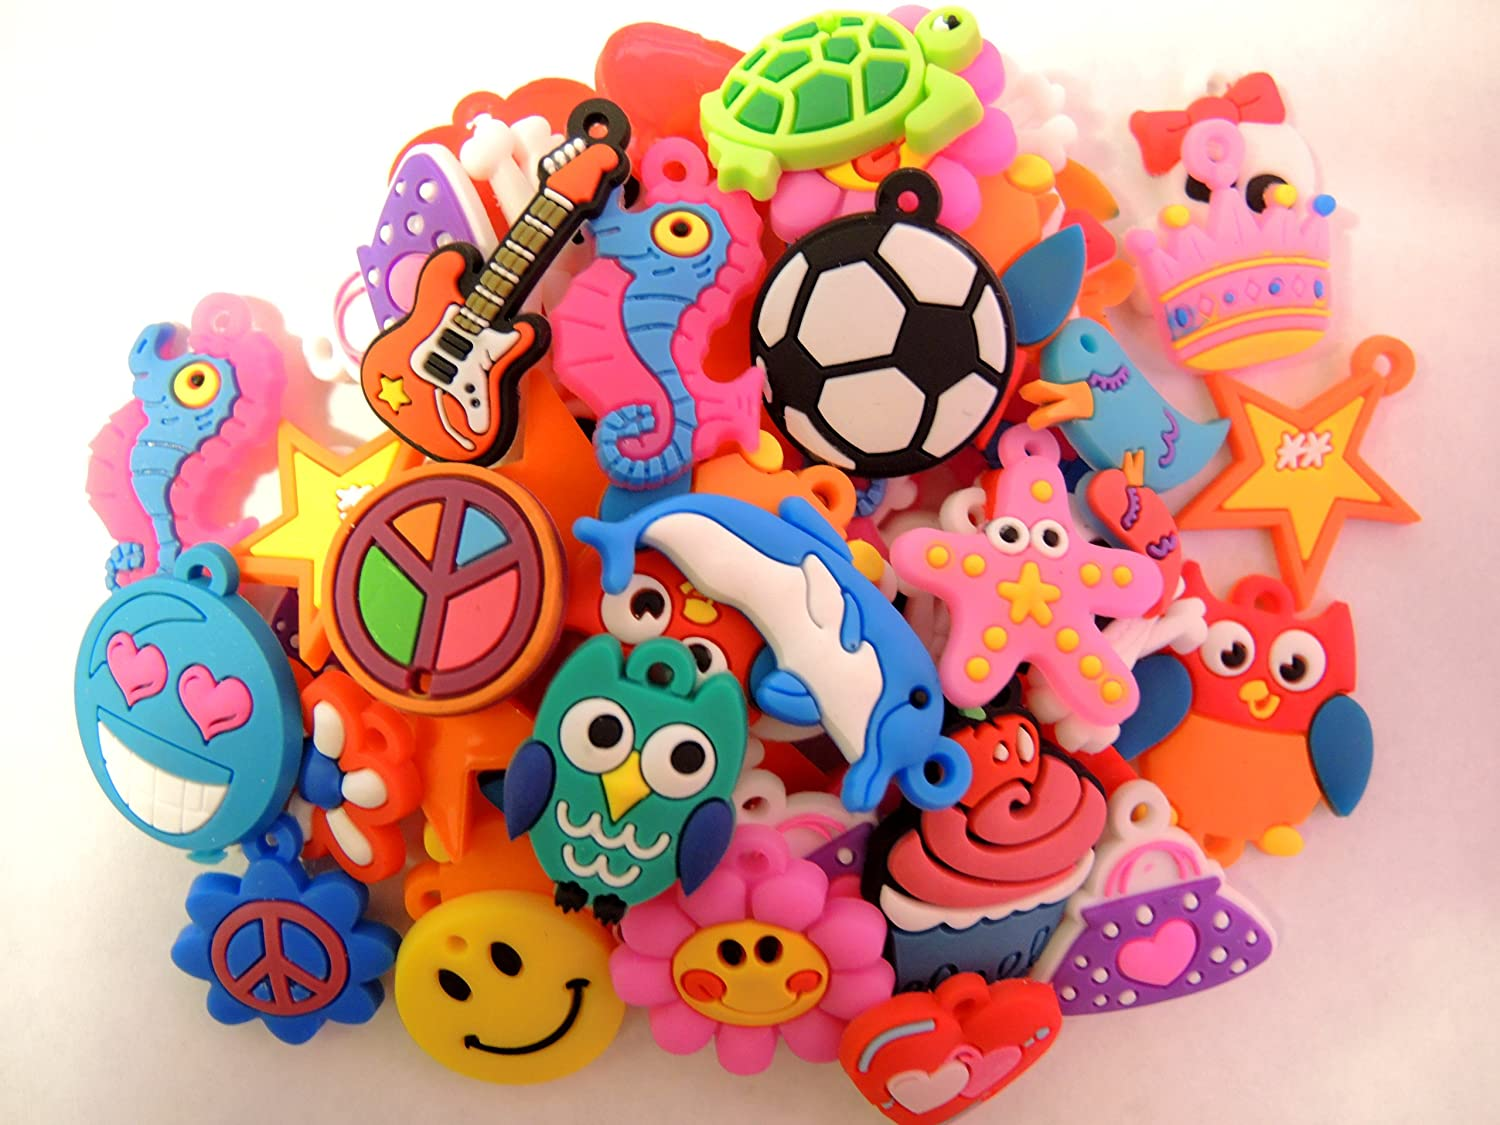 auténtico 1 X 105 Assorted Rubber Charms by Buy_Stuff_Here_Looms     Compra calidad 100% autentica